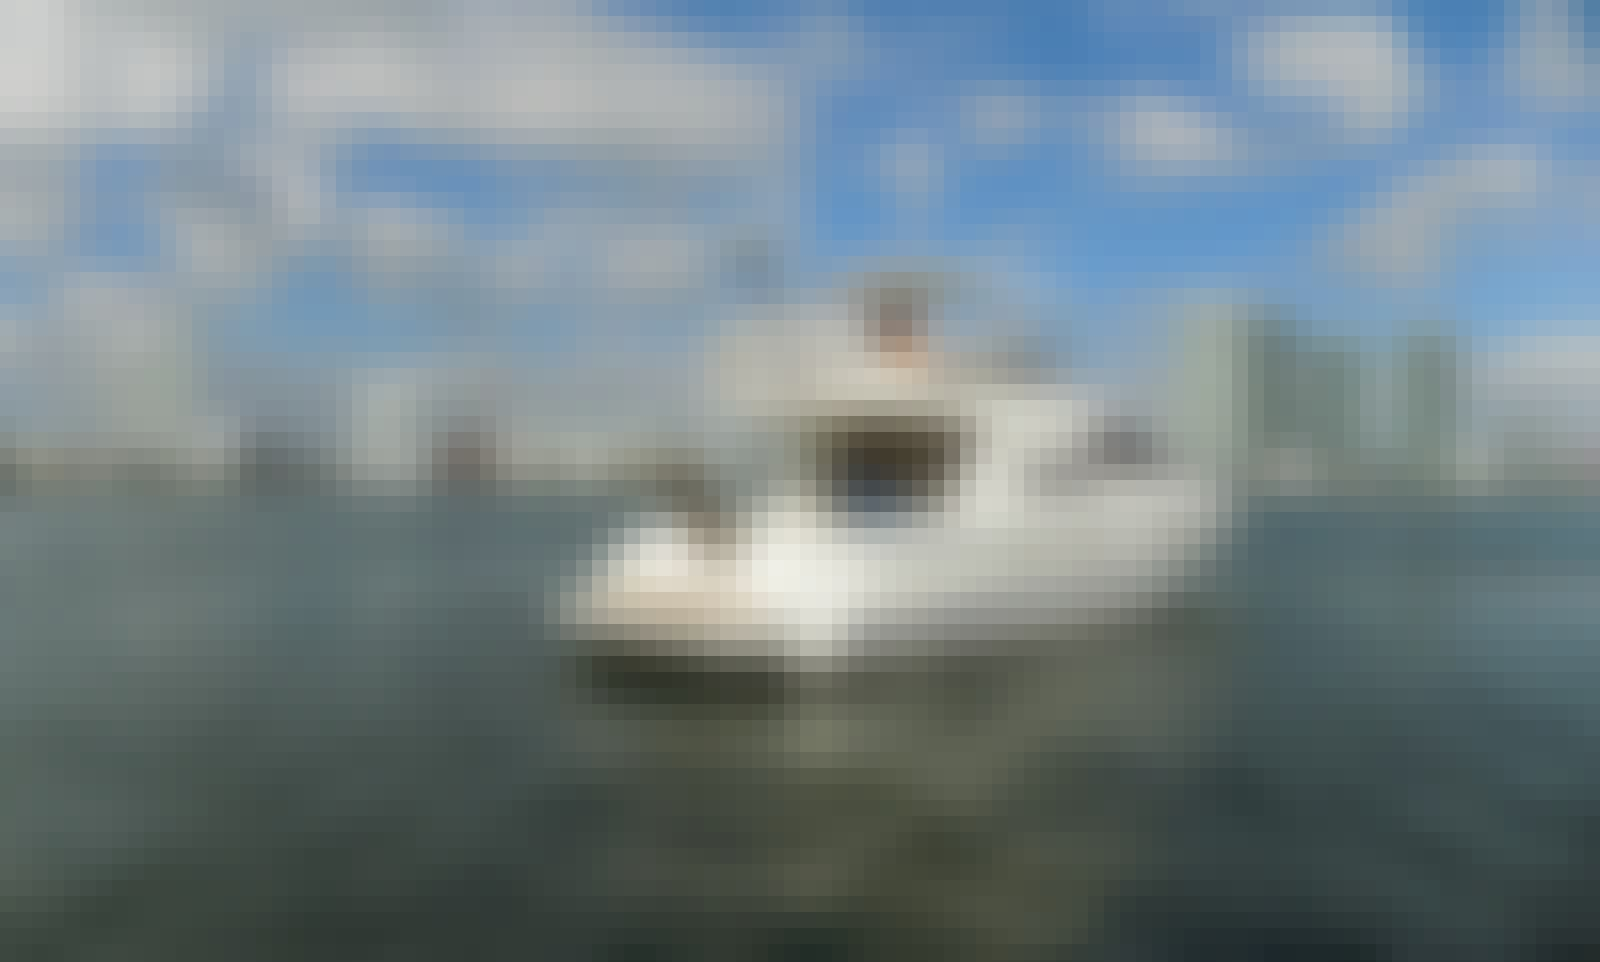 Captained Charter on 50' Cranchi Motor Yacht for 12 People in Miami, Florida!